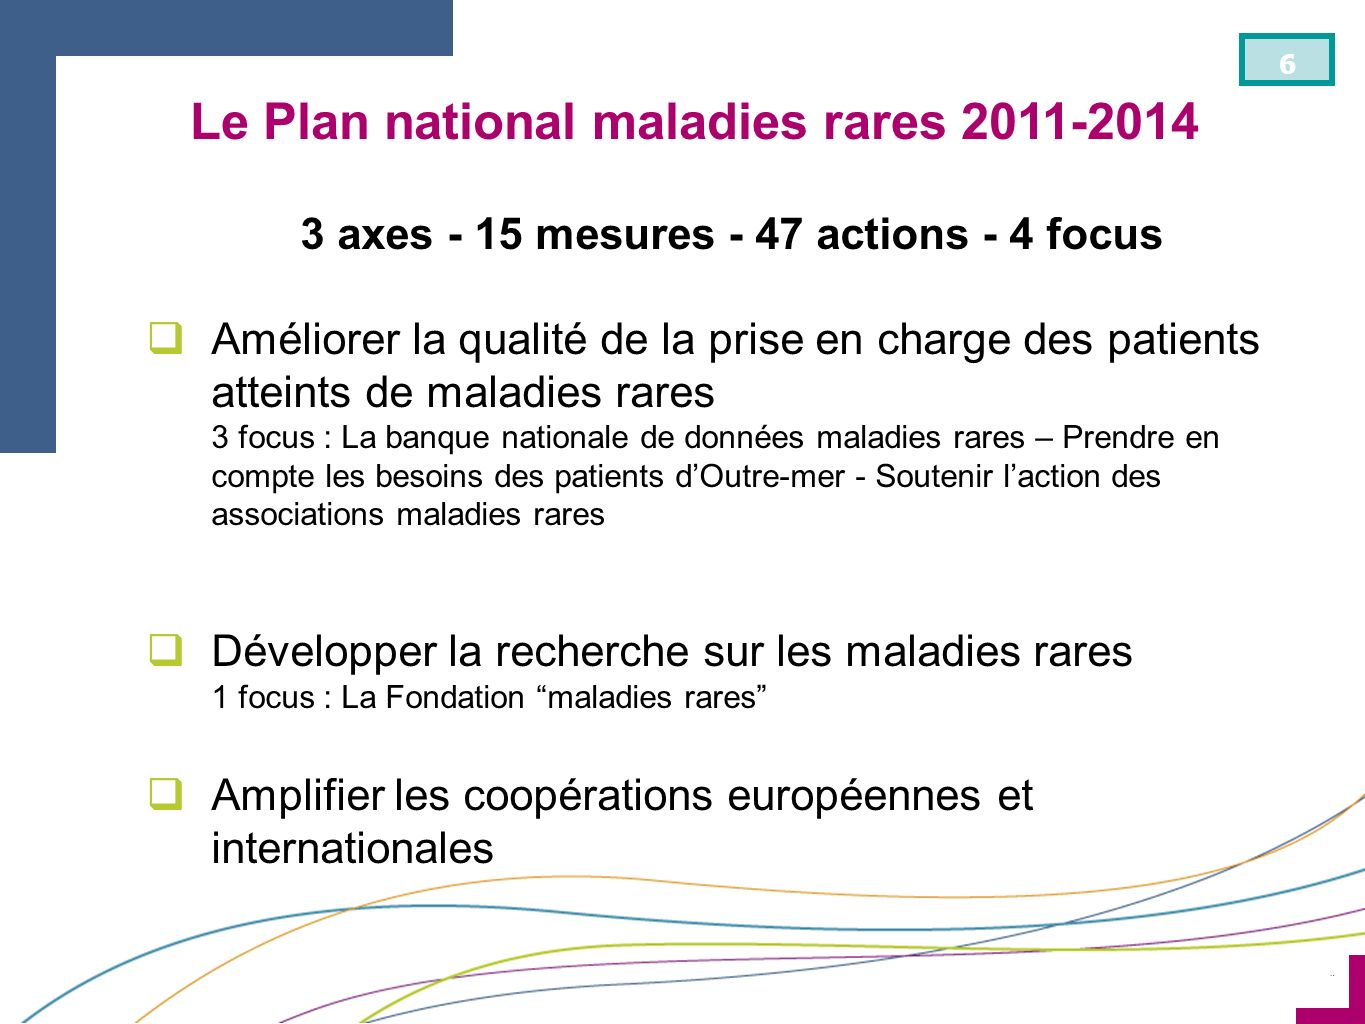 Le Plan national maladies rares 2011-2014